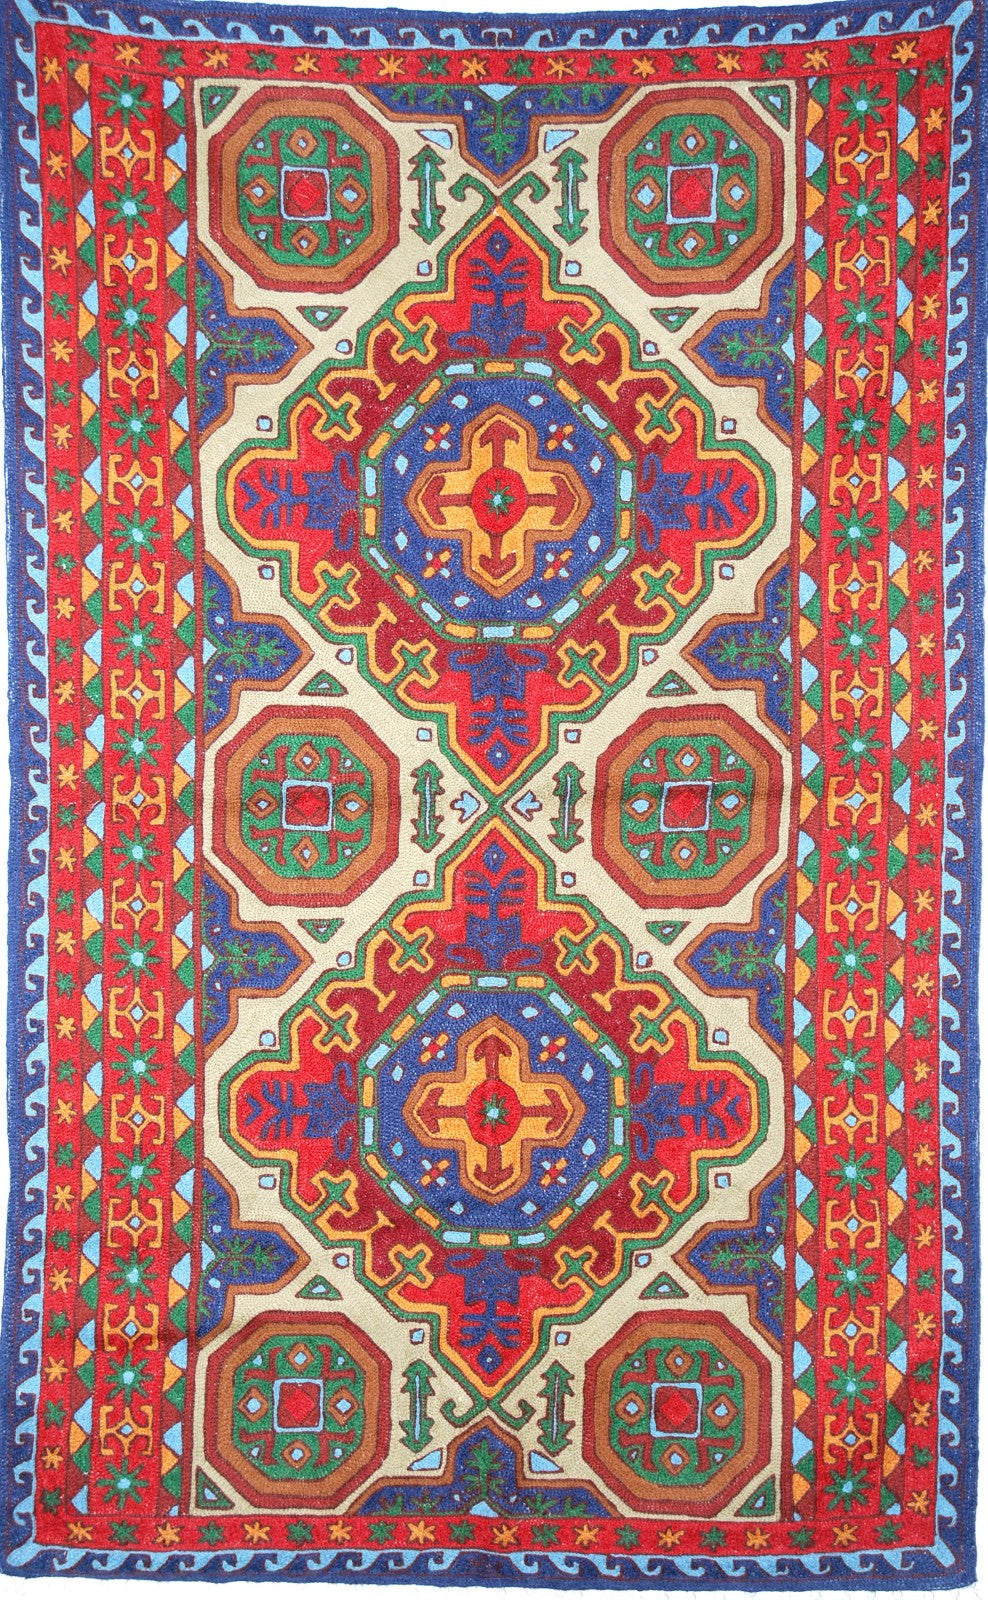 Embroidery of carpets with tapestry seam